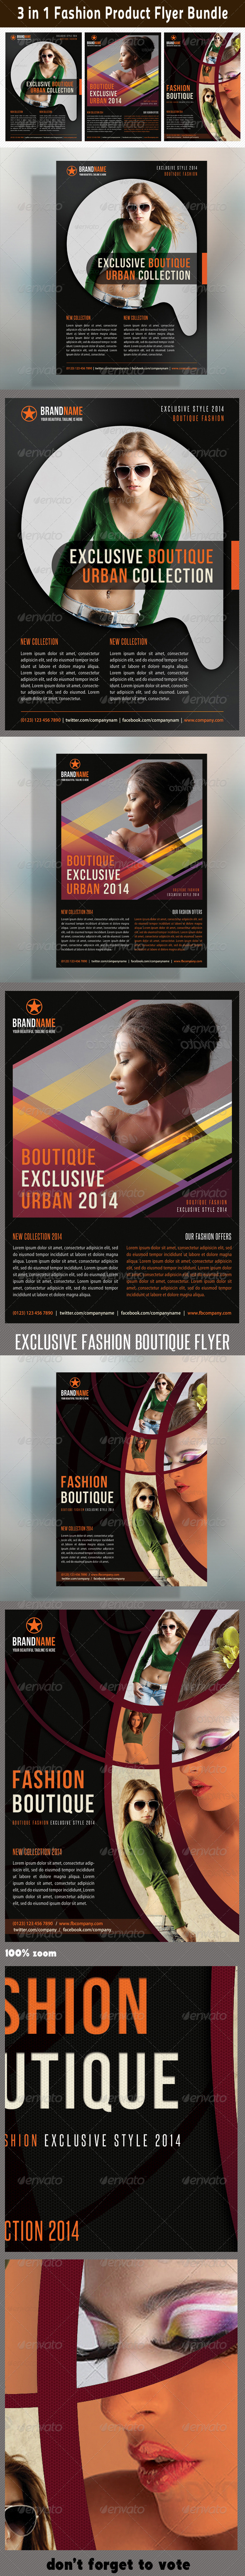 3 in 1 Fashion Product Flyer Bundle 08 - Commerce Flyers